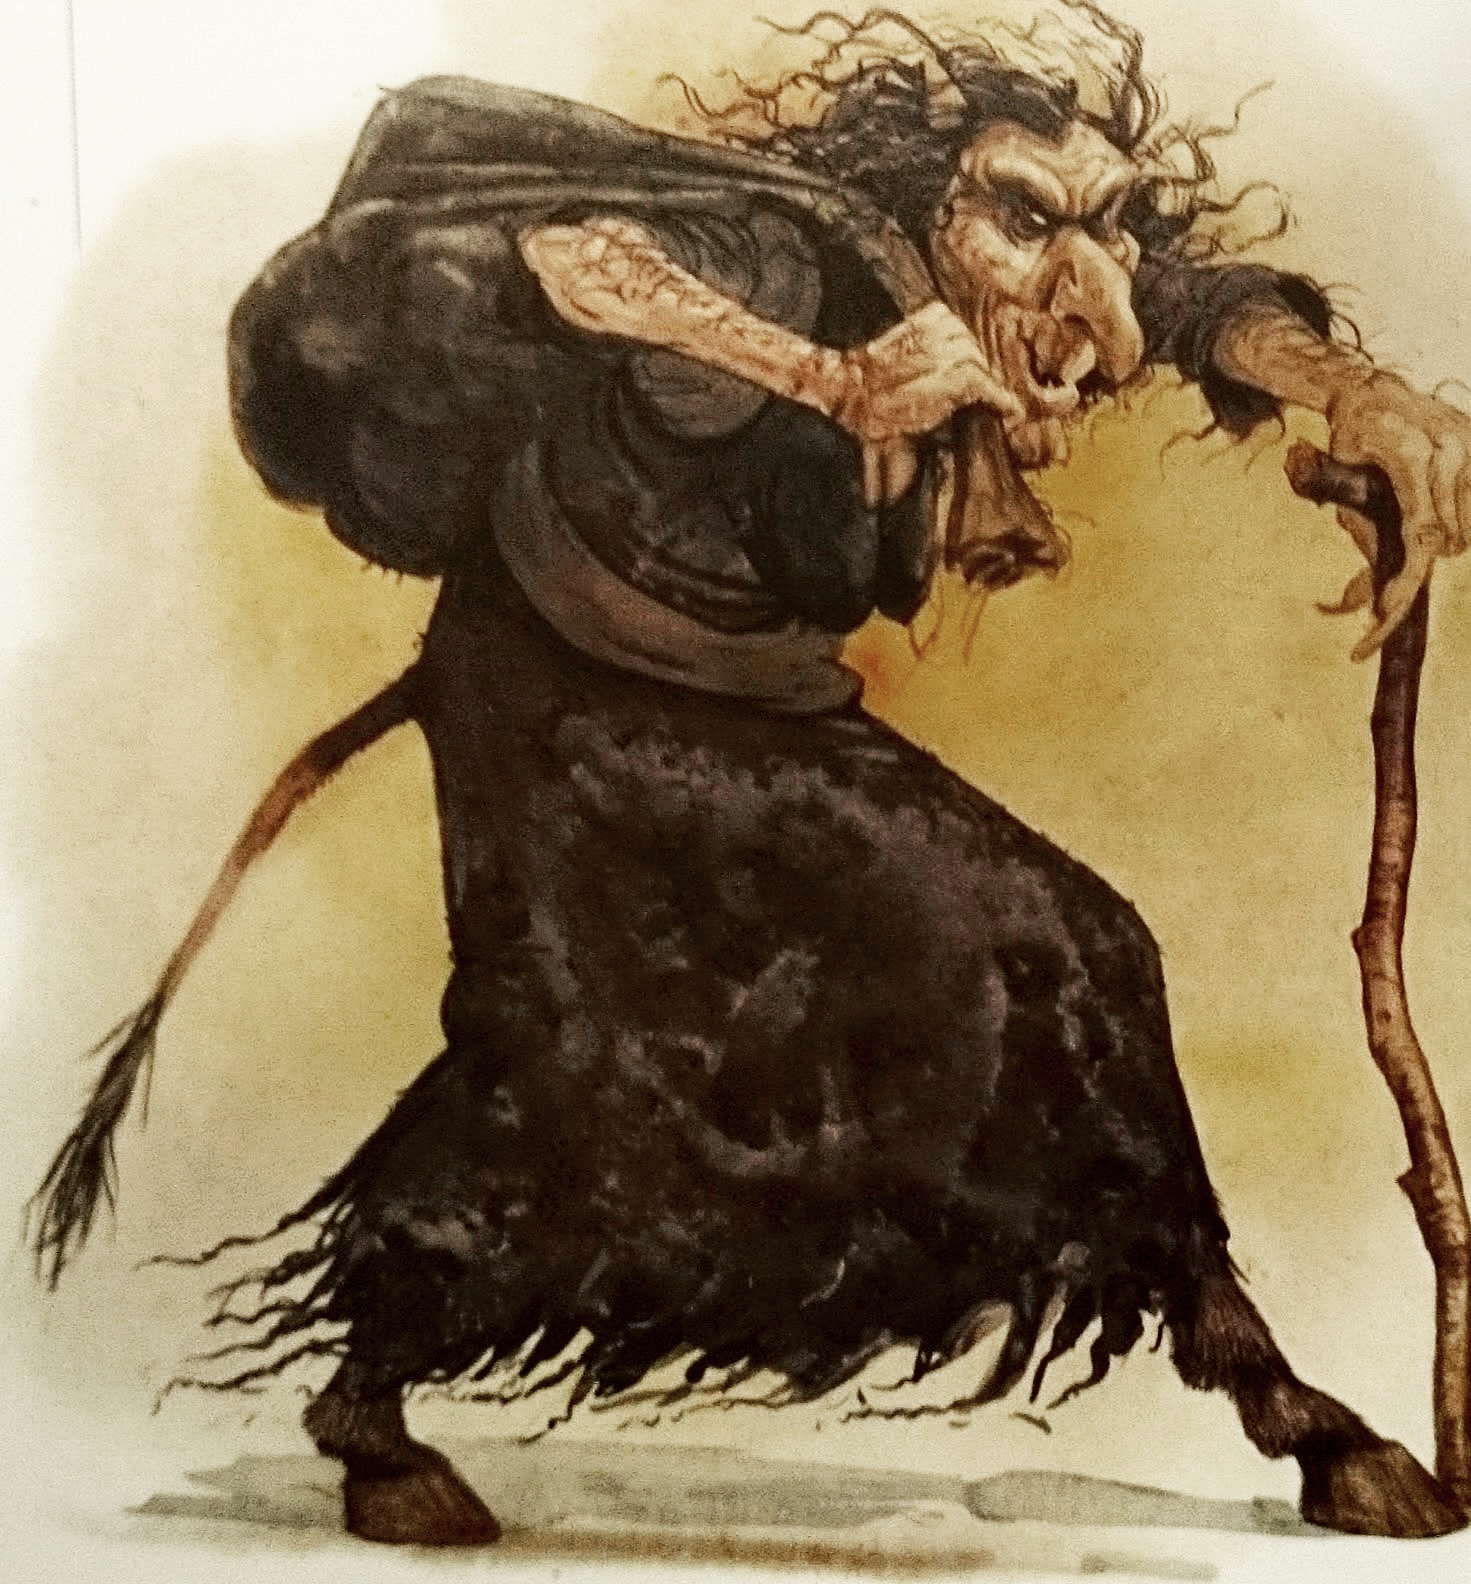 Holiday Horrors: Gryla and the Yule Lads — D. William Landsborough